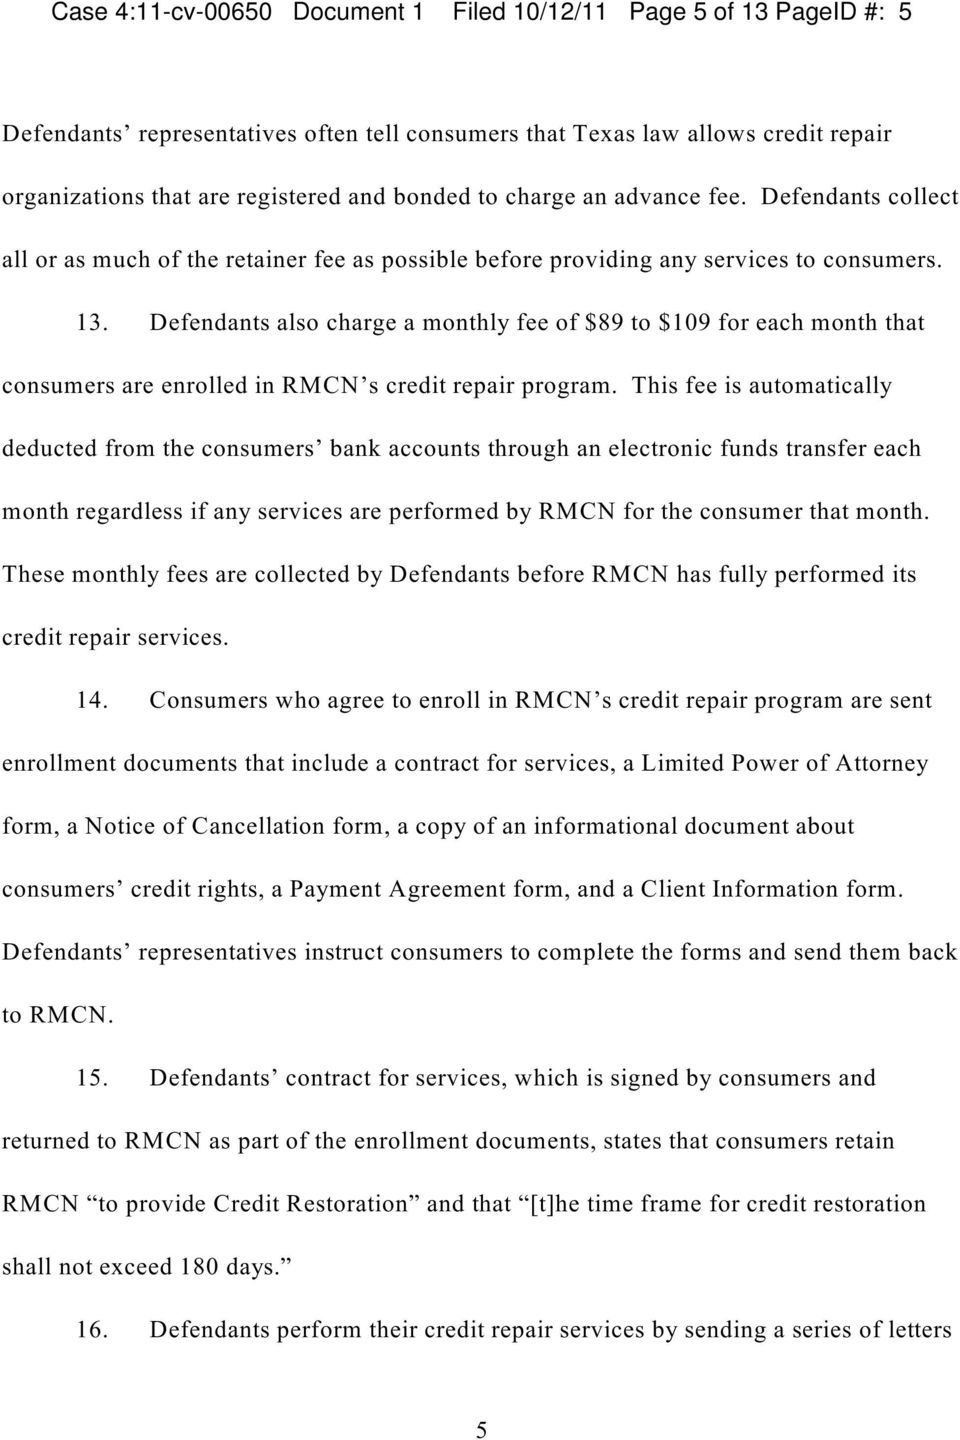 Defendants also charge a monthly fee of $89 to $109 for each month that consumers are enrolled in RMCN s credit repair program.